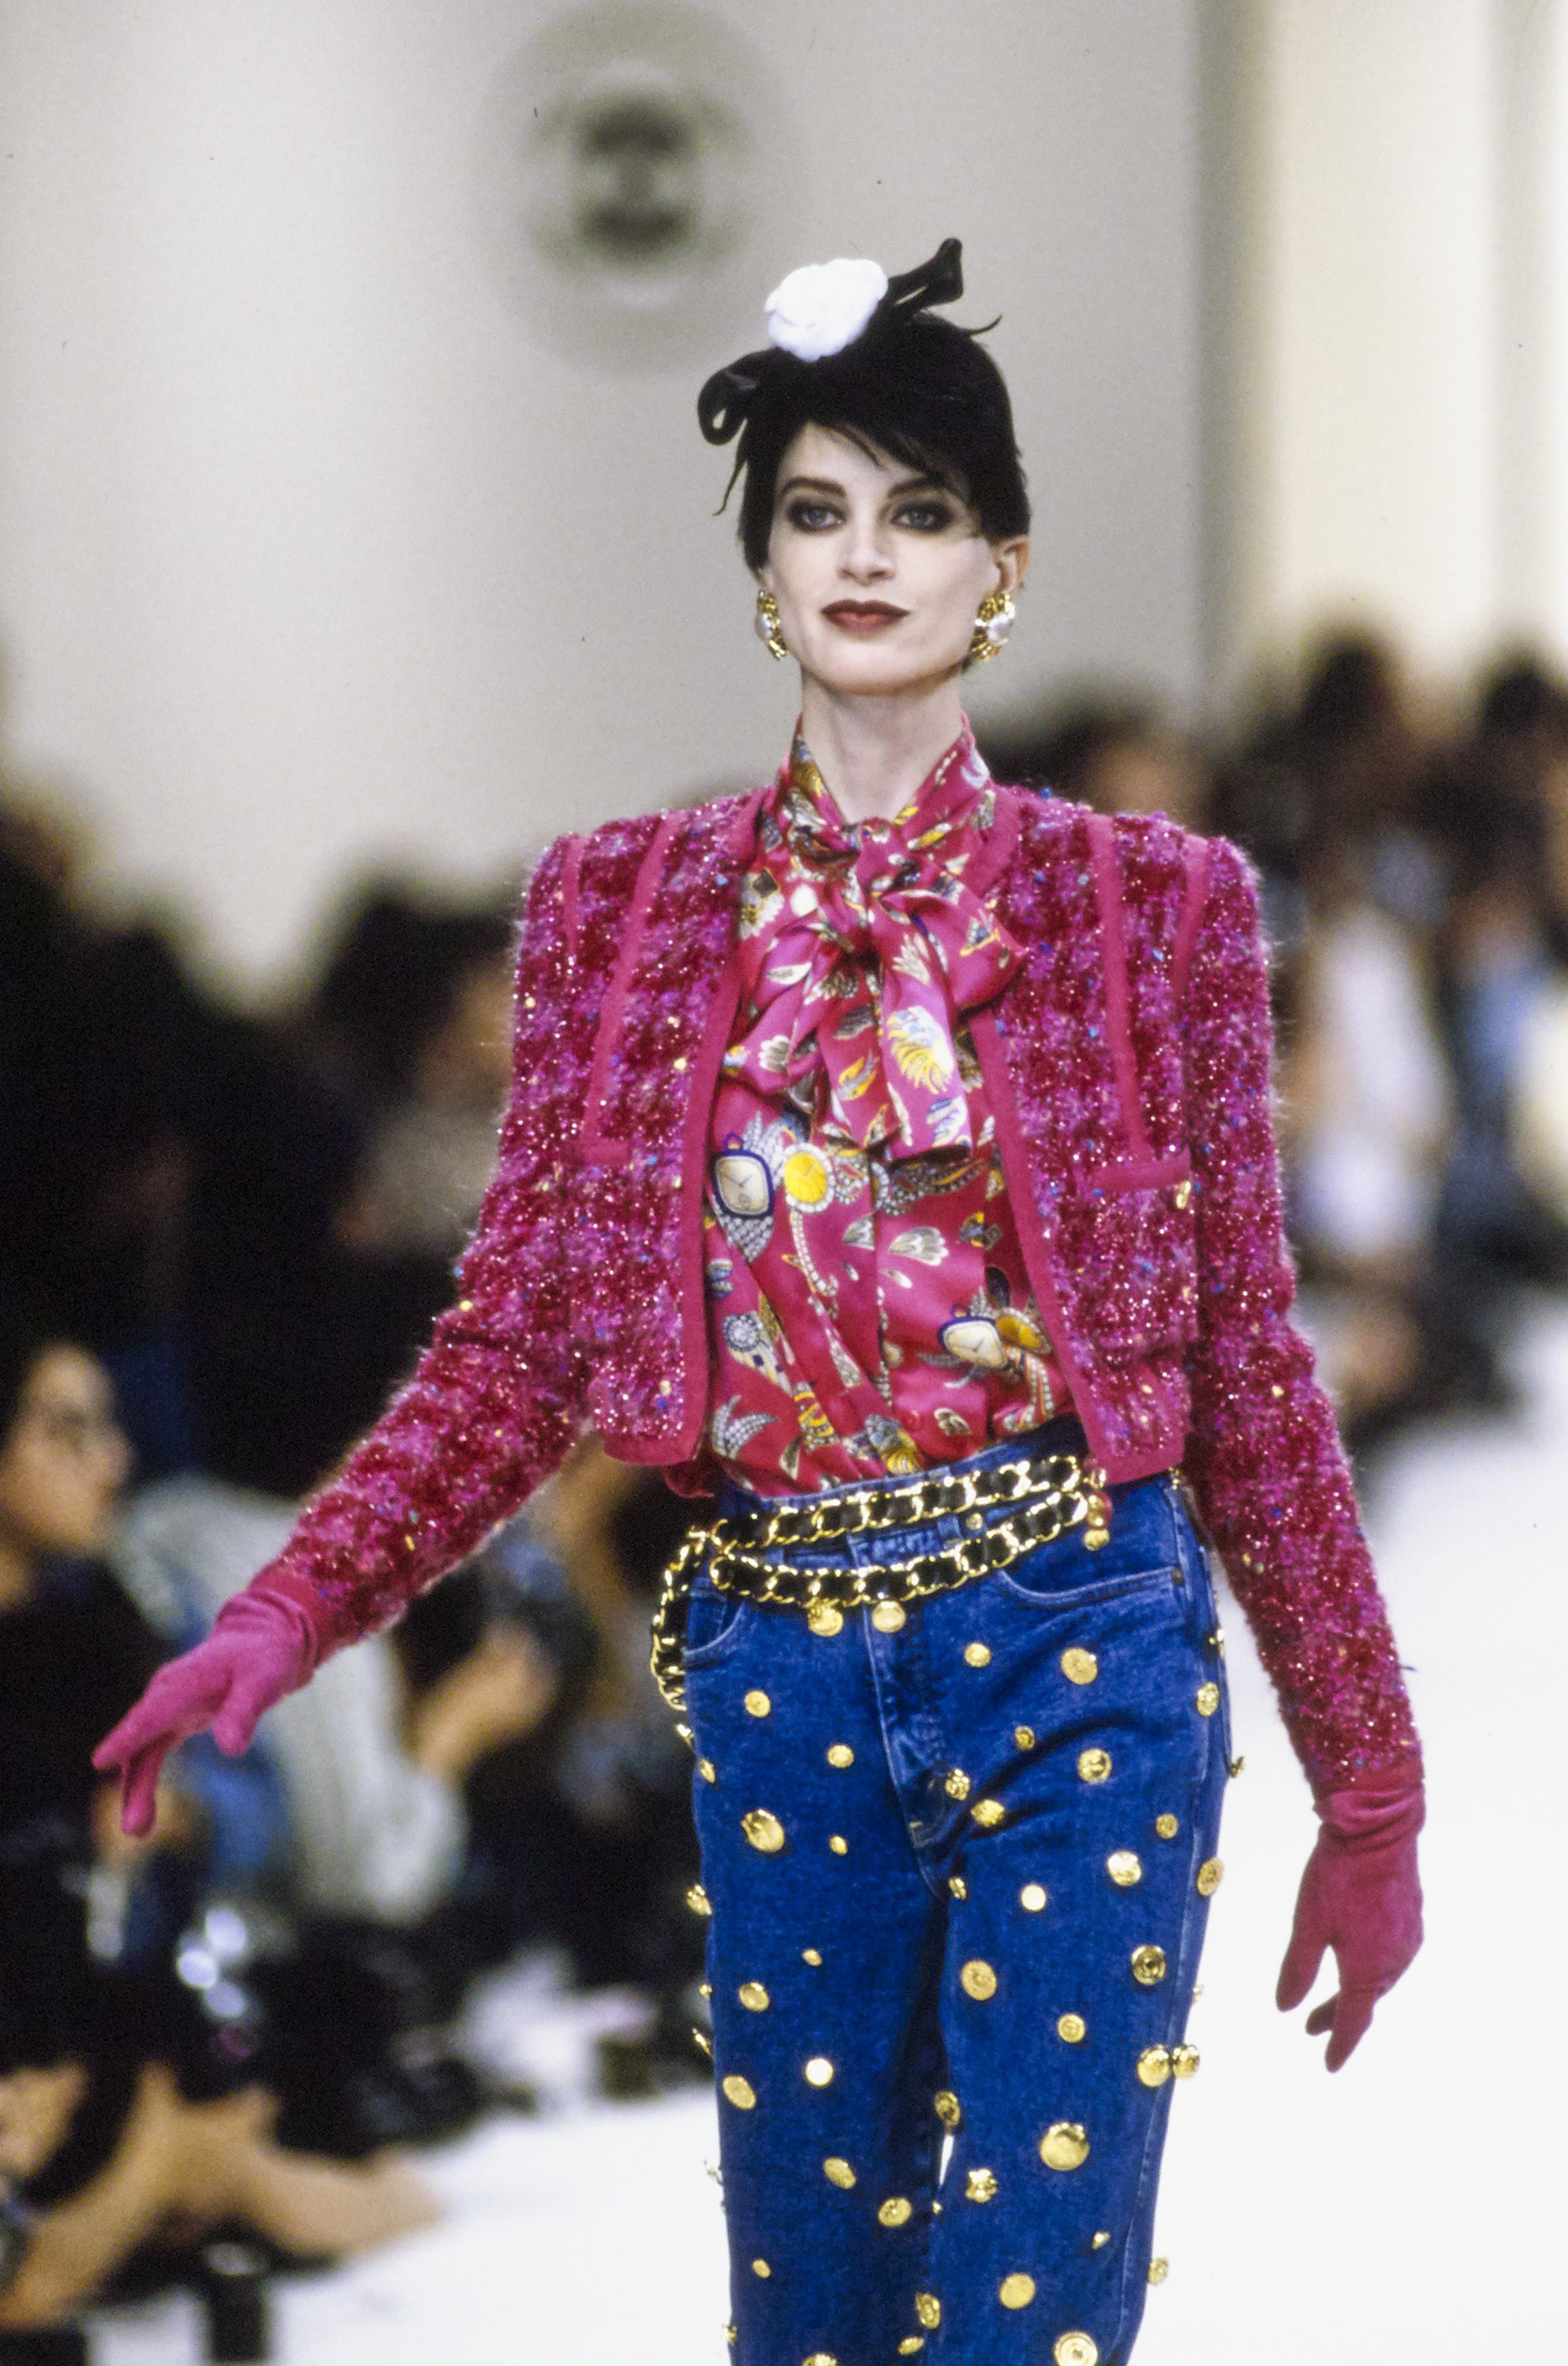 chanel in the 90's - chanel-fall-1991-ready-to-wear-CN10052960-kristen-mcmenamy